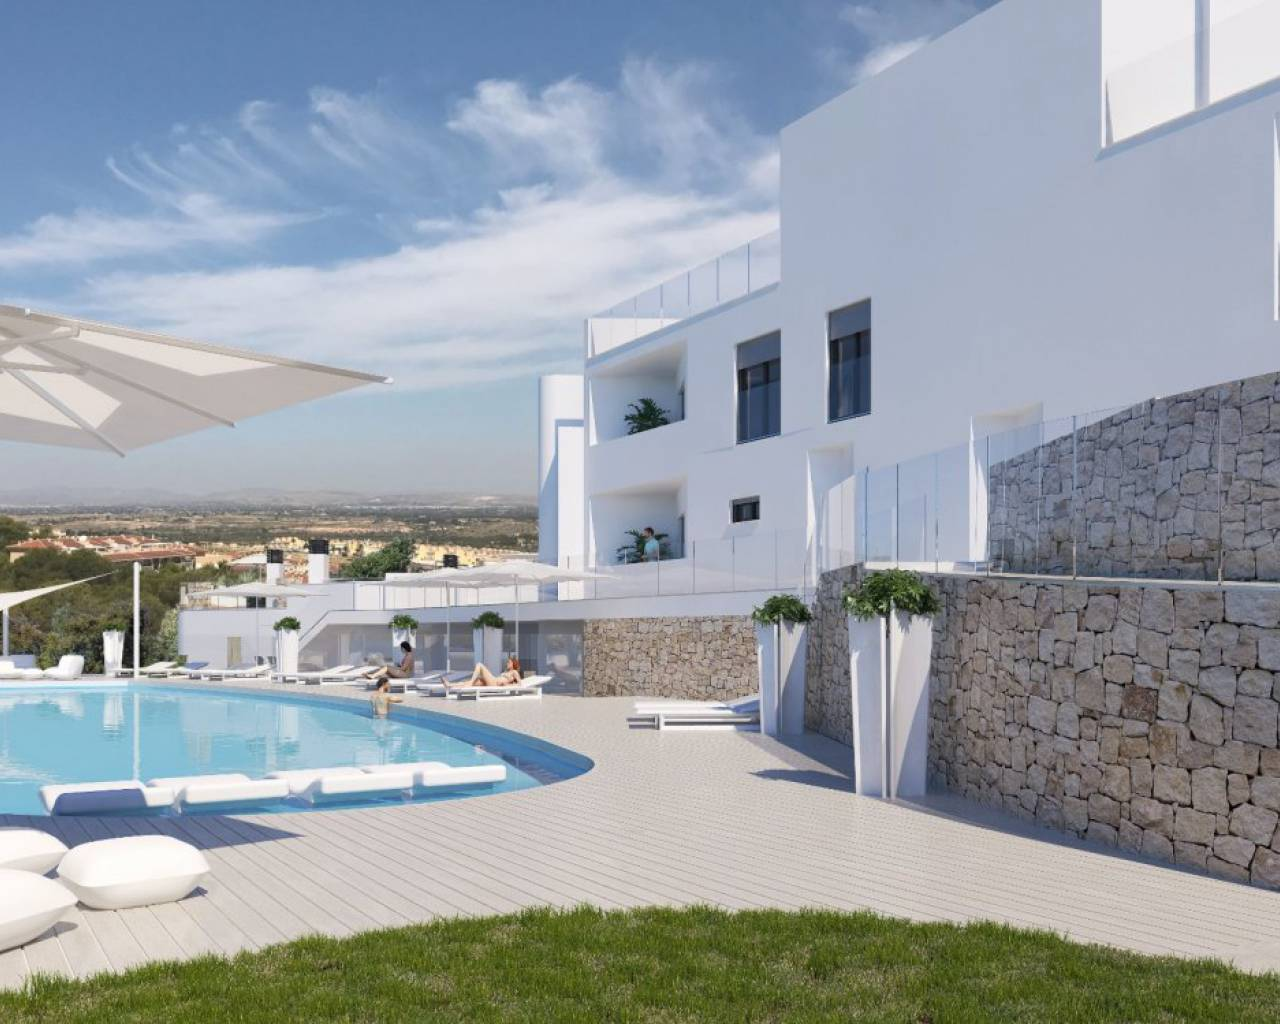 New Build - Townhouse - Gran alacant - Avda. mediterraneo